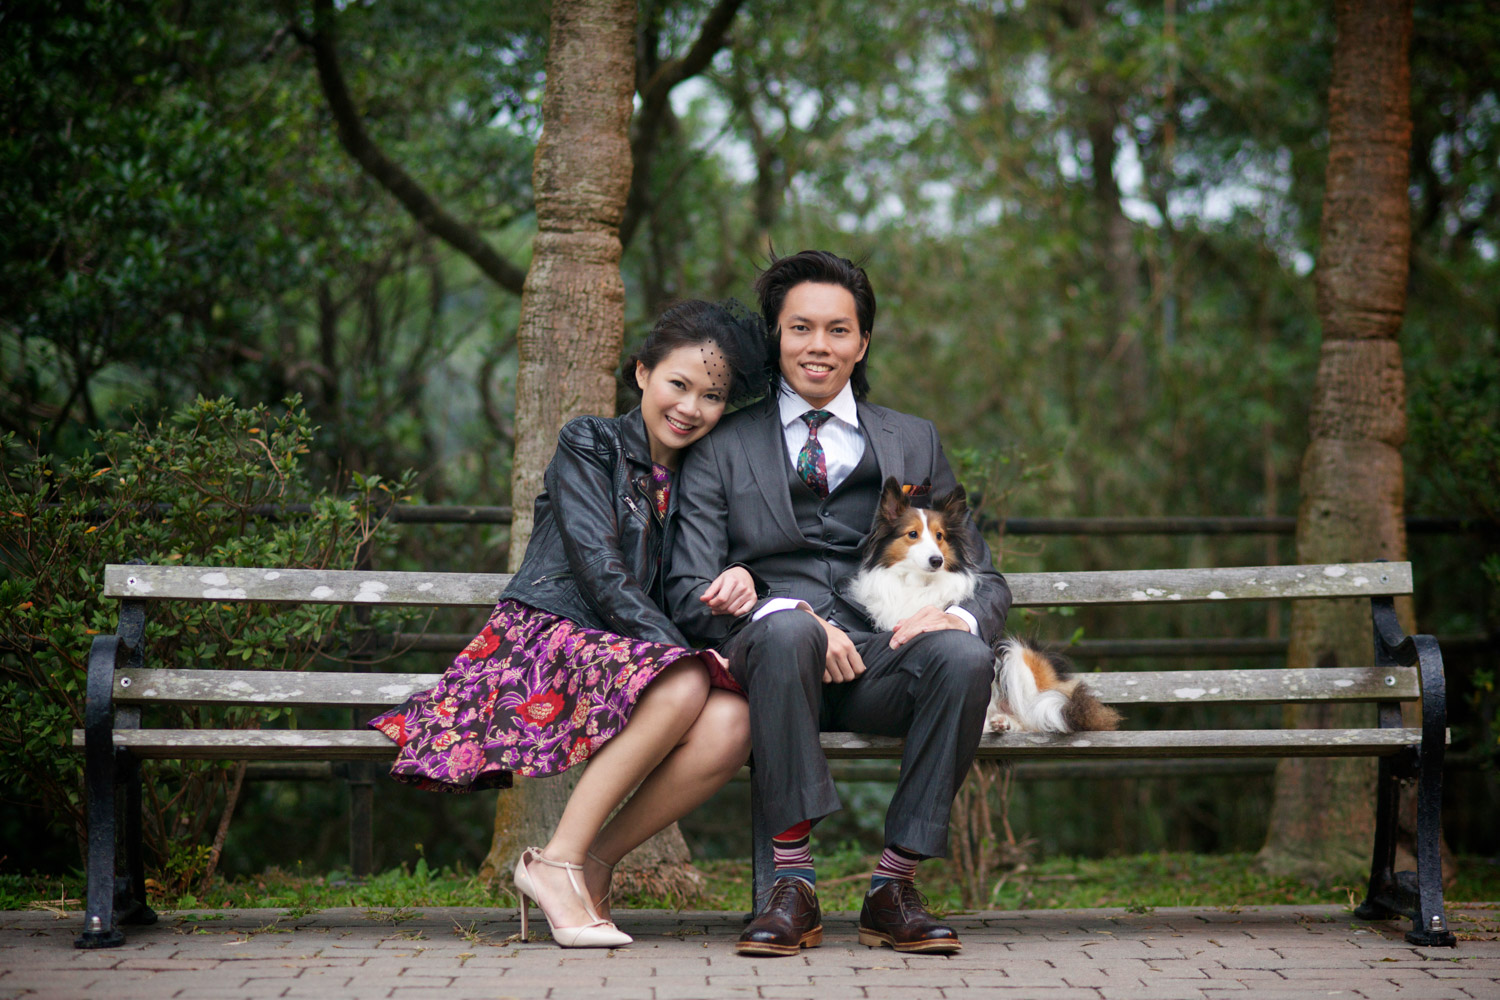 hong-kong-pre-wedding-engagement-photographer-couple-sitting-on-bench-victoria-peak-gardens.jpg